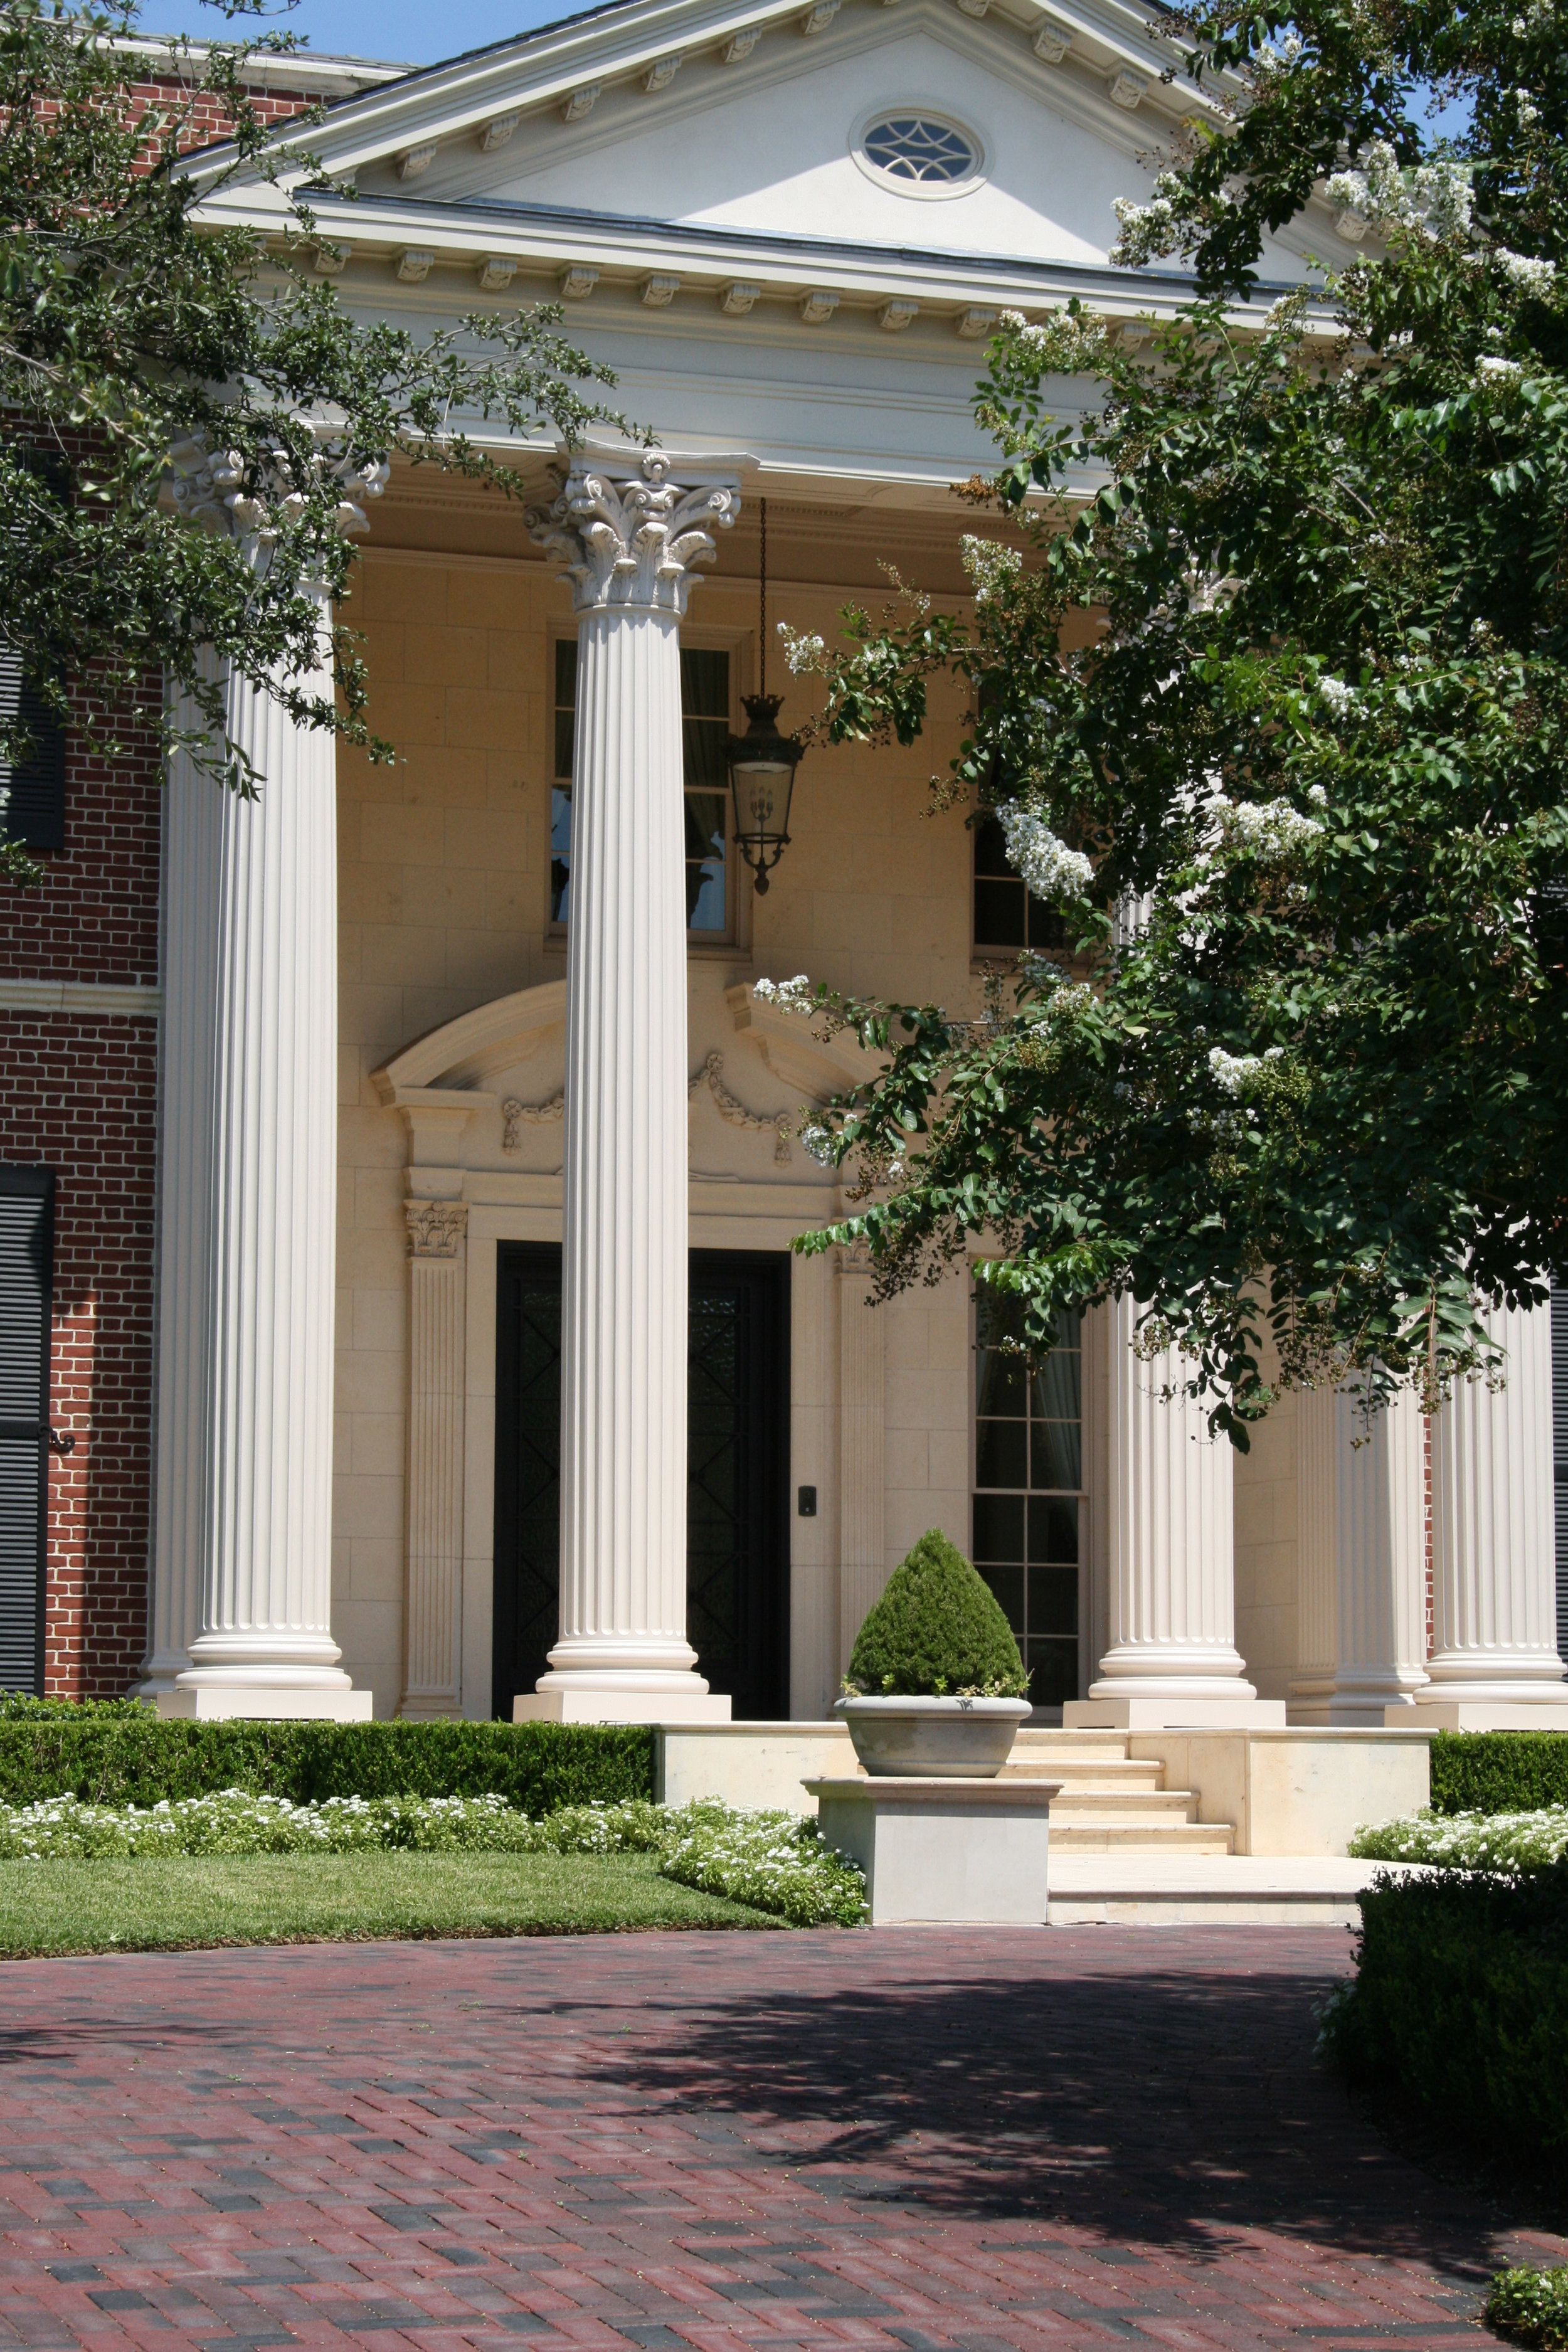 In this photo of a home designed by Paul Turney, you can see examples of both dentil moldings and Corinthian columns. Dentil moldings line the pediment over the front porch. (This image is copyright of  Turney & Associates, Inc.  Chambers Interiors & Associates was given permission to feature this image).